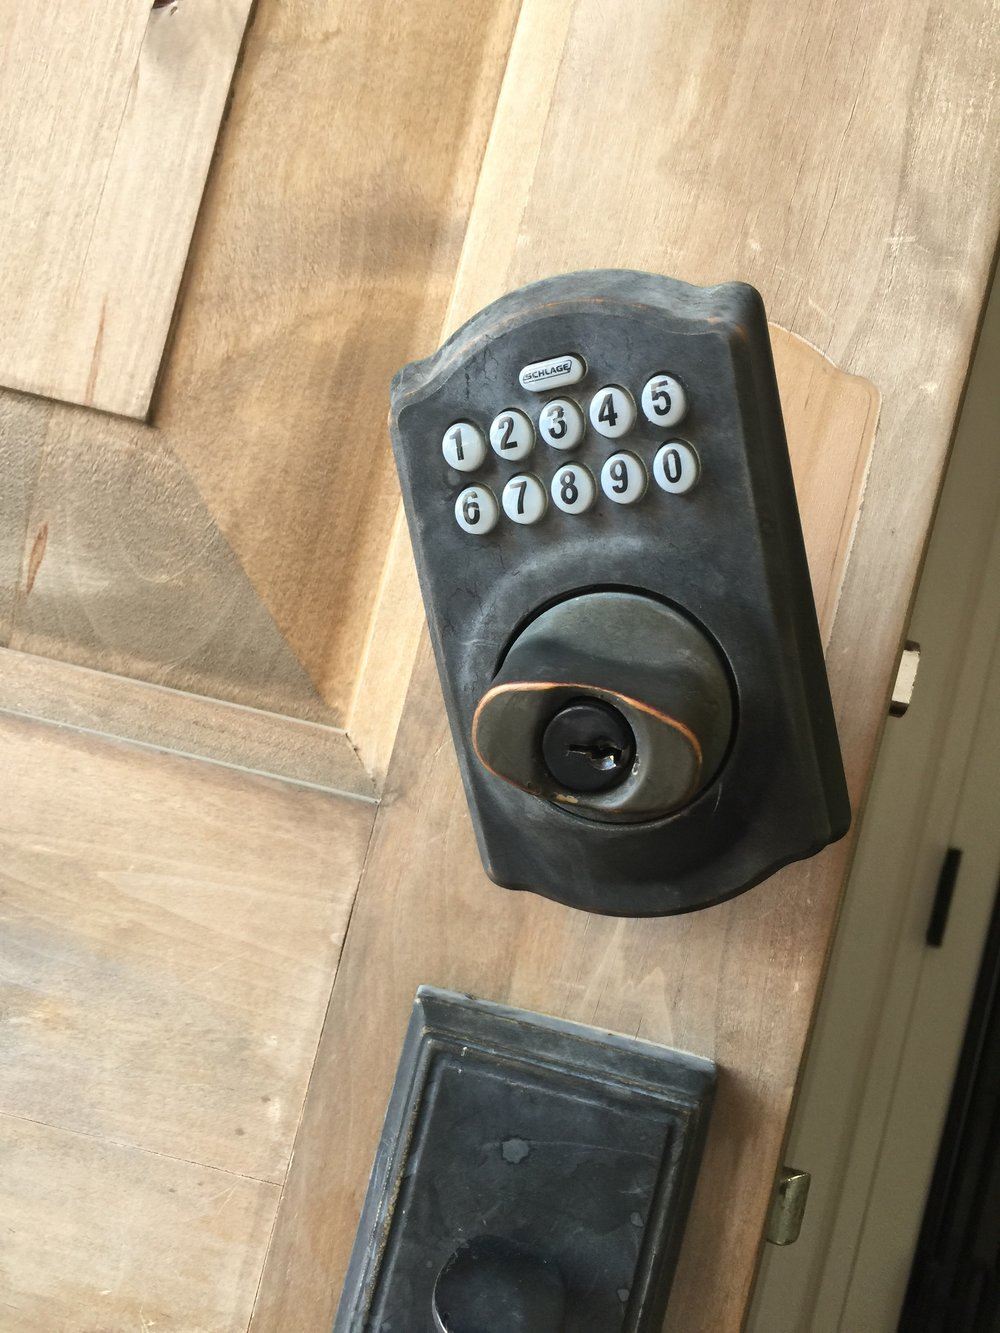 Why Struggle With Installing or Repairing a Lock Yourself? Call Quick Lock & Pick Locksmith in San Diego, a Licensed and Insured 24/7 Locksmith and Get Your Lock Fixed by the Locksmith Pros for a Low Price!